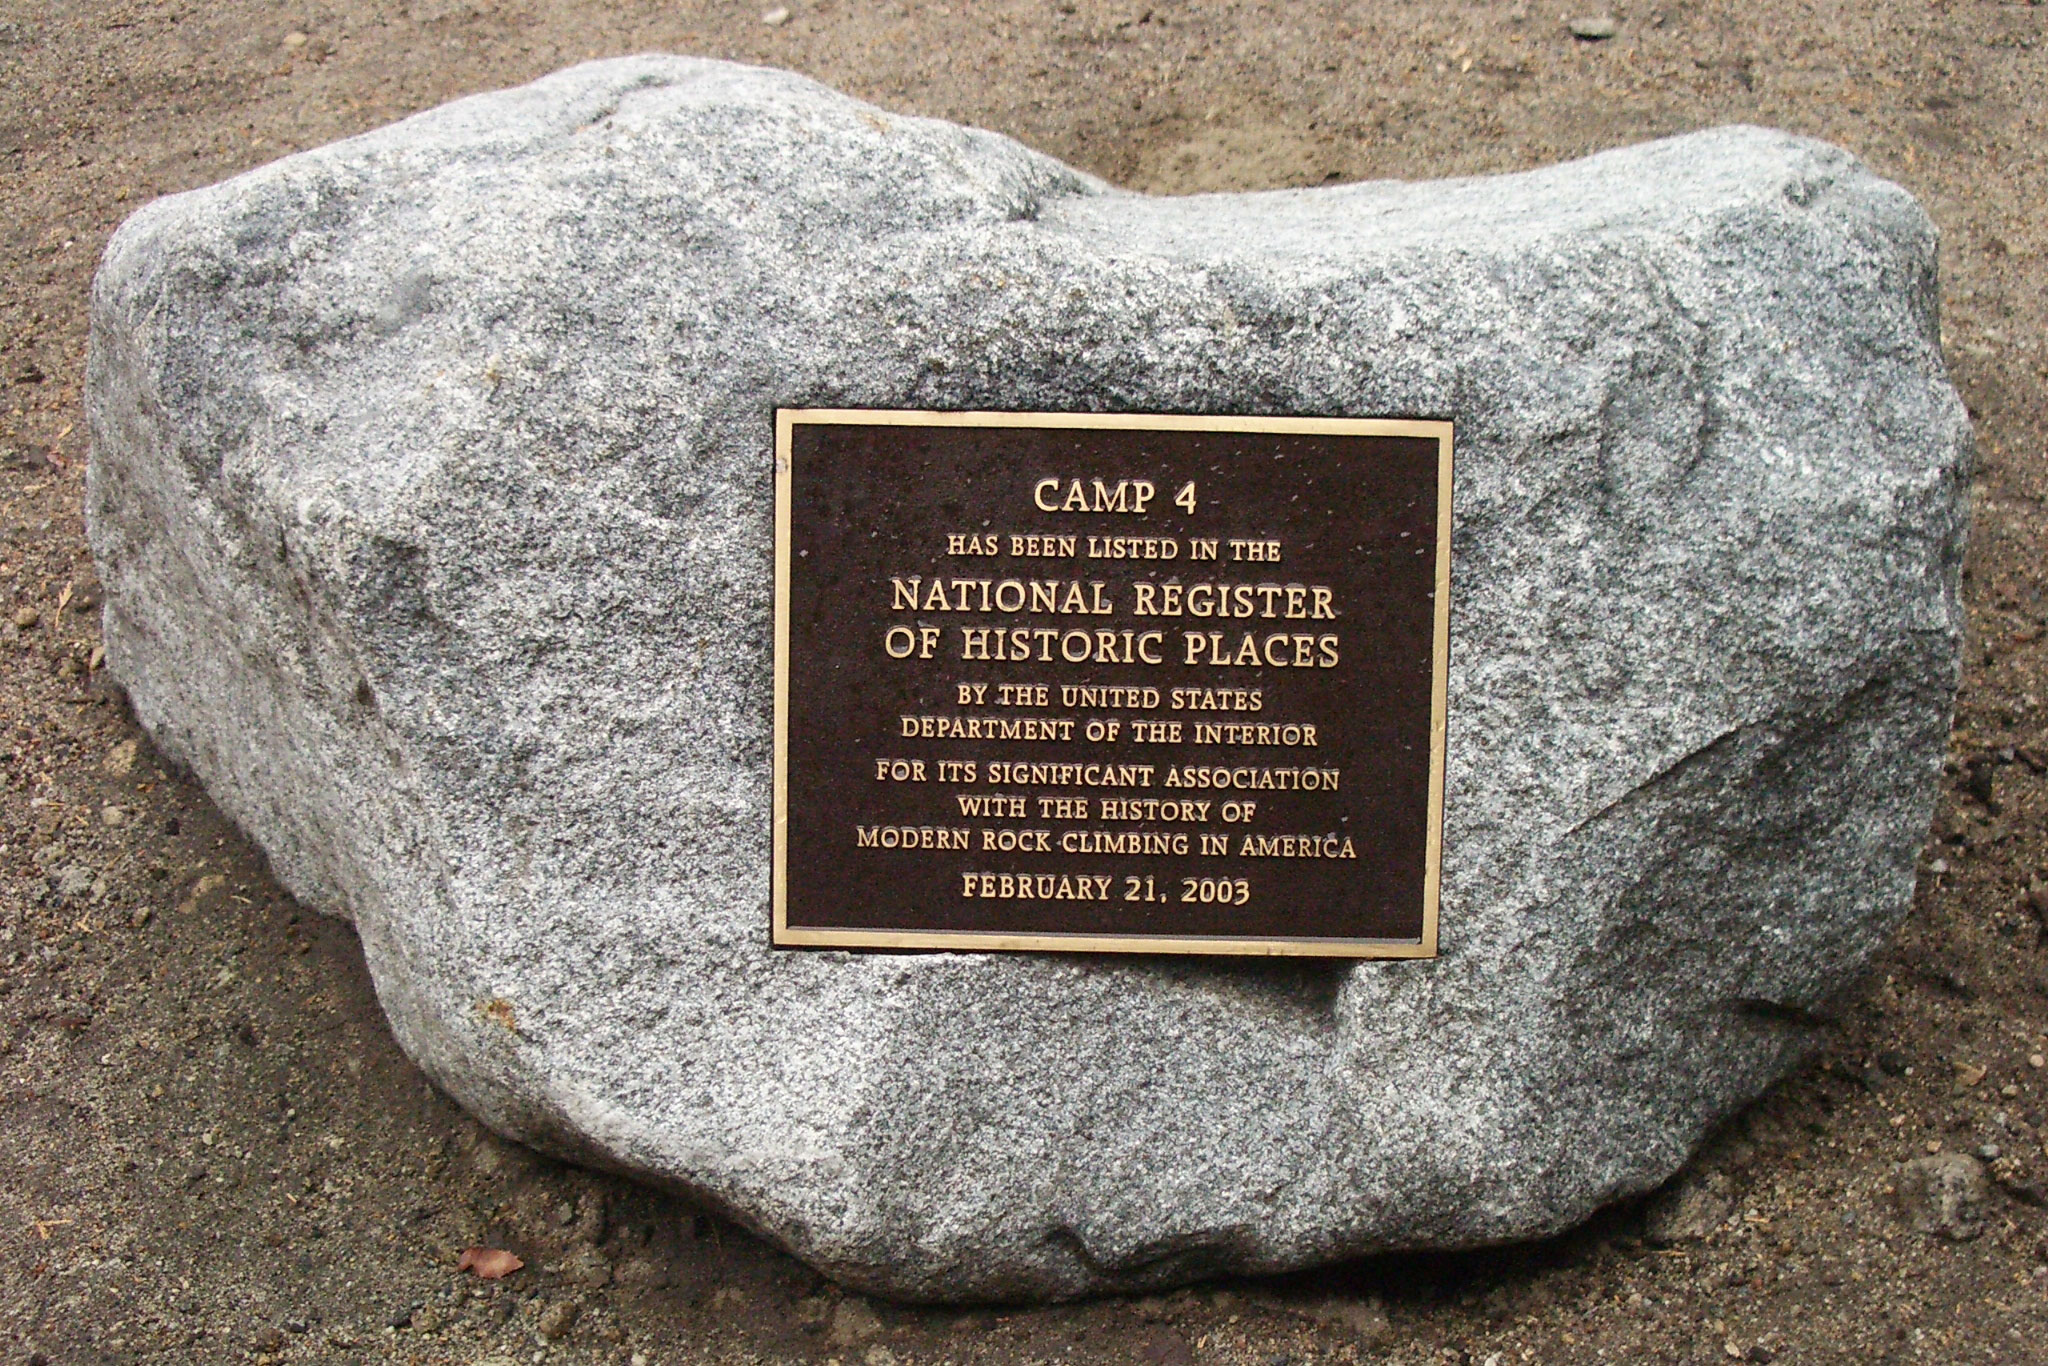 Camp 4 Yosemite National Park Historic Register plaque